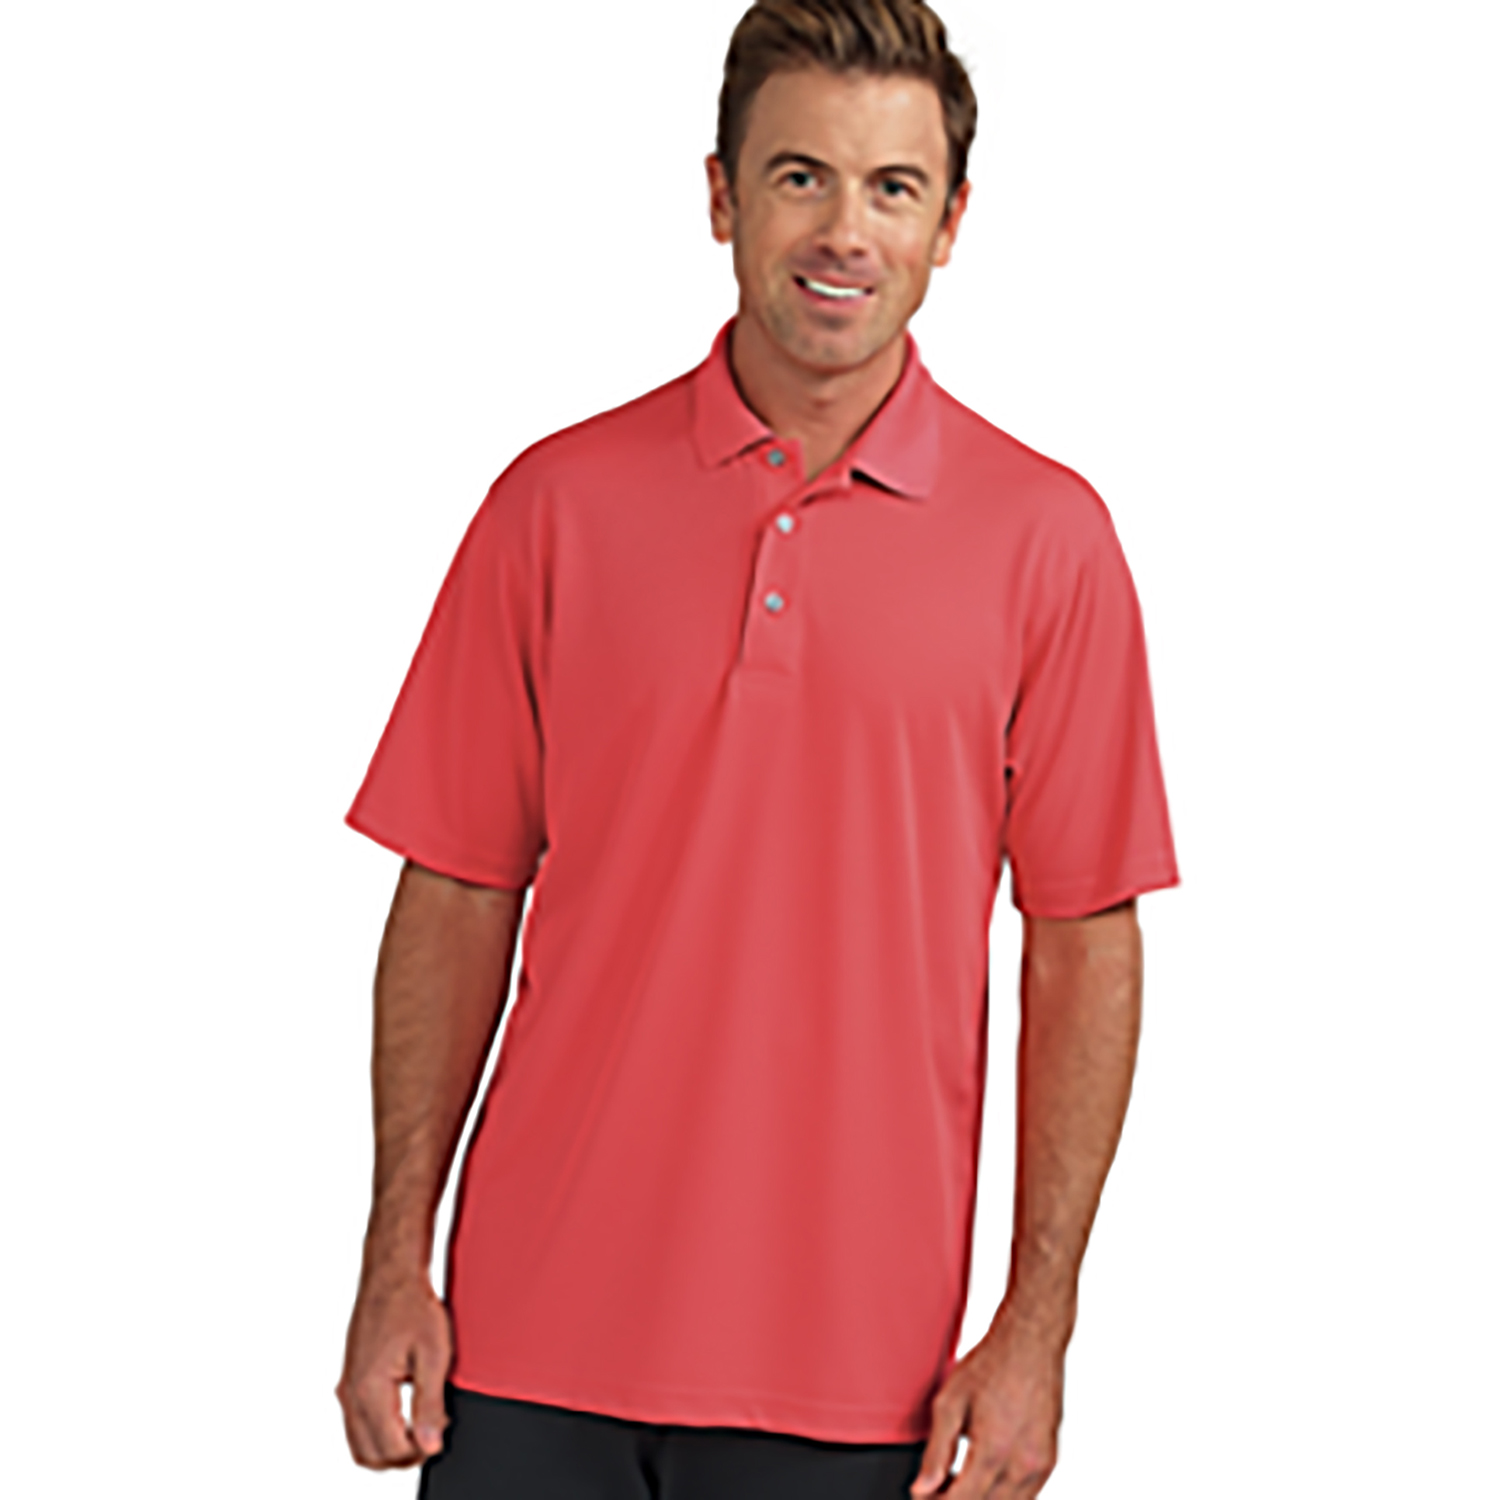 Century Place Paragon Saratoga 30 Plus UPF Mens Short Sleeve